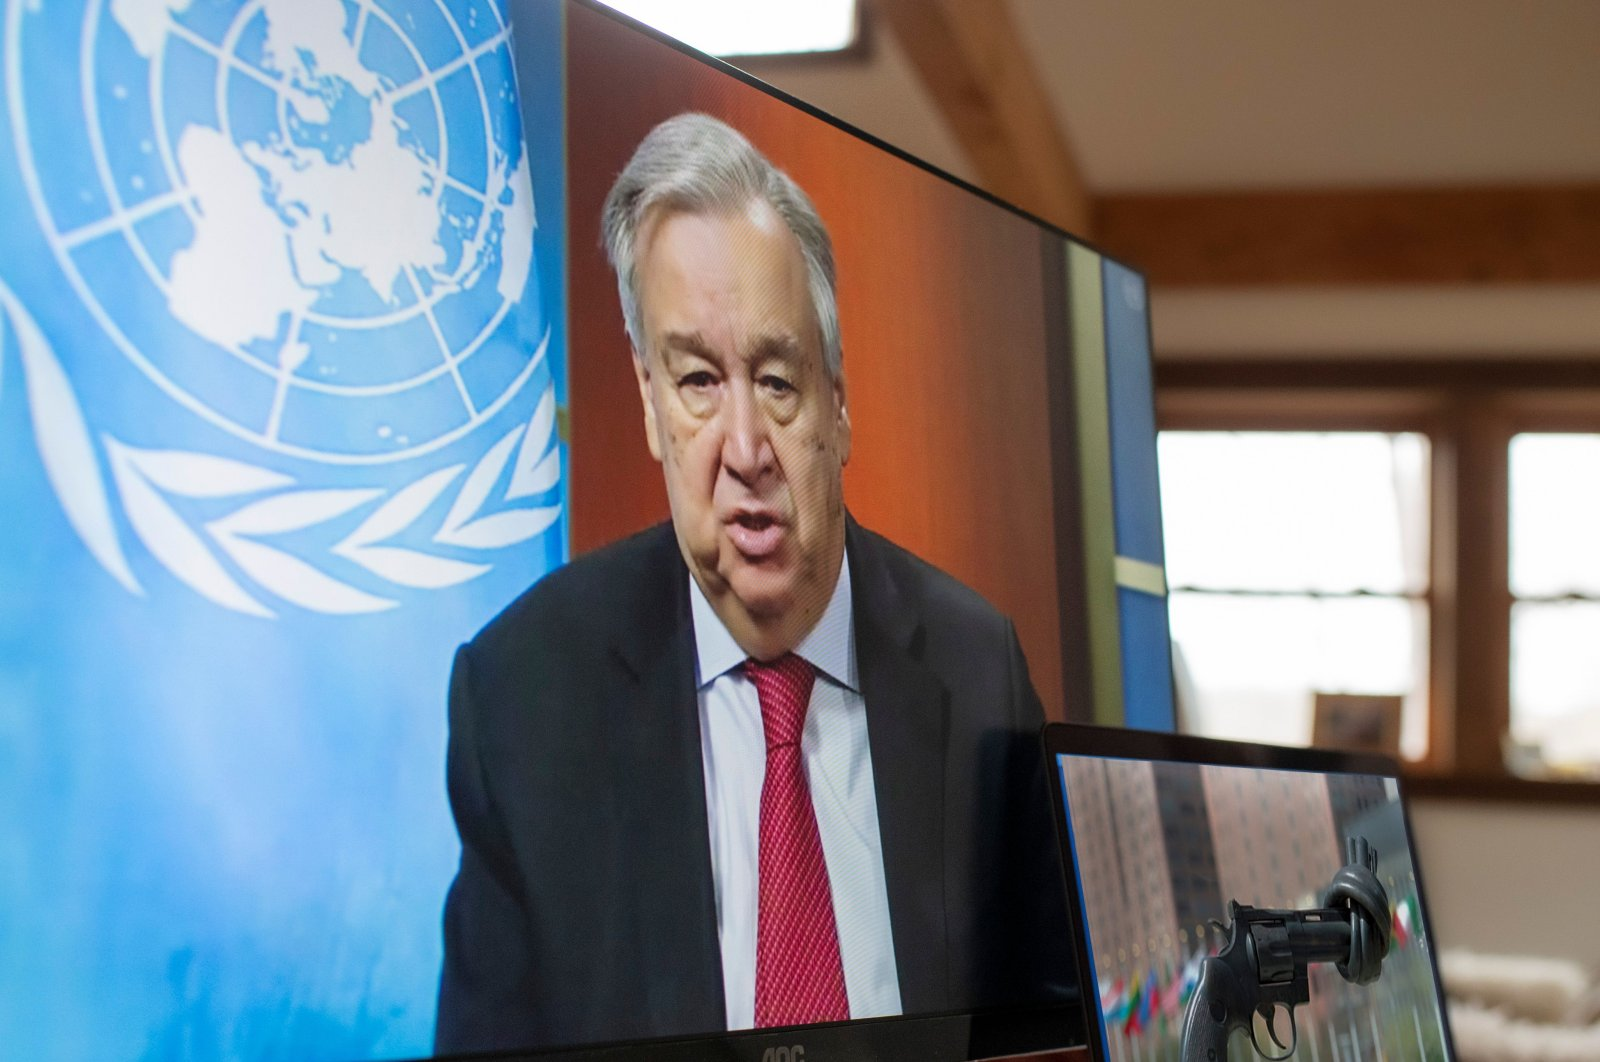 U.N. Secretary-General Antonio Guterres holds a virtual press conference at U.N. headquarters in New York City, Friday, April 3, 2020. (AFP/UN Photo)